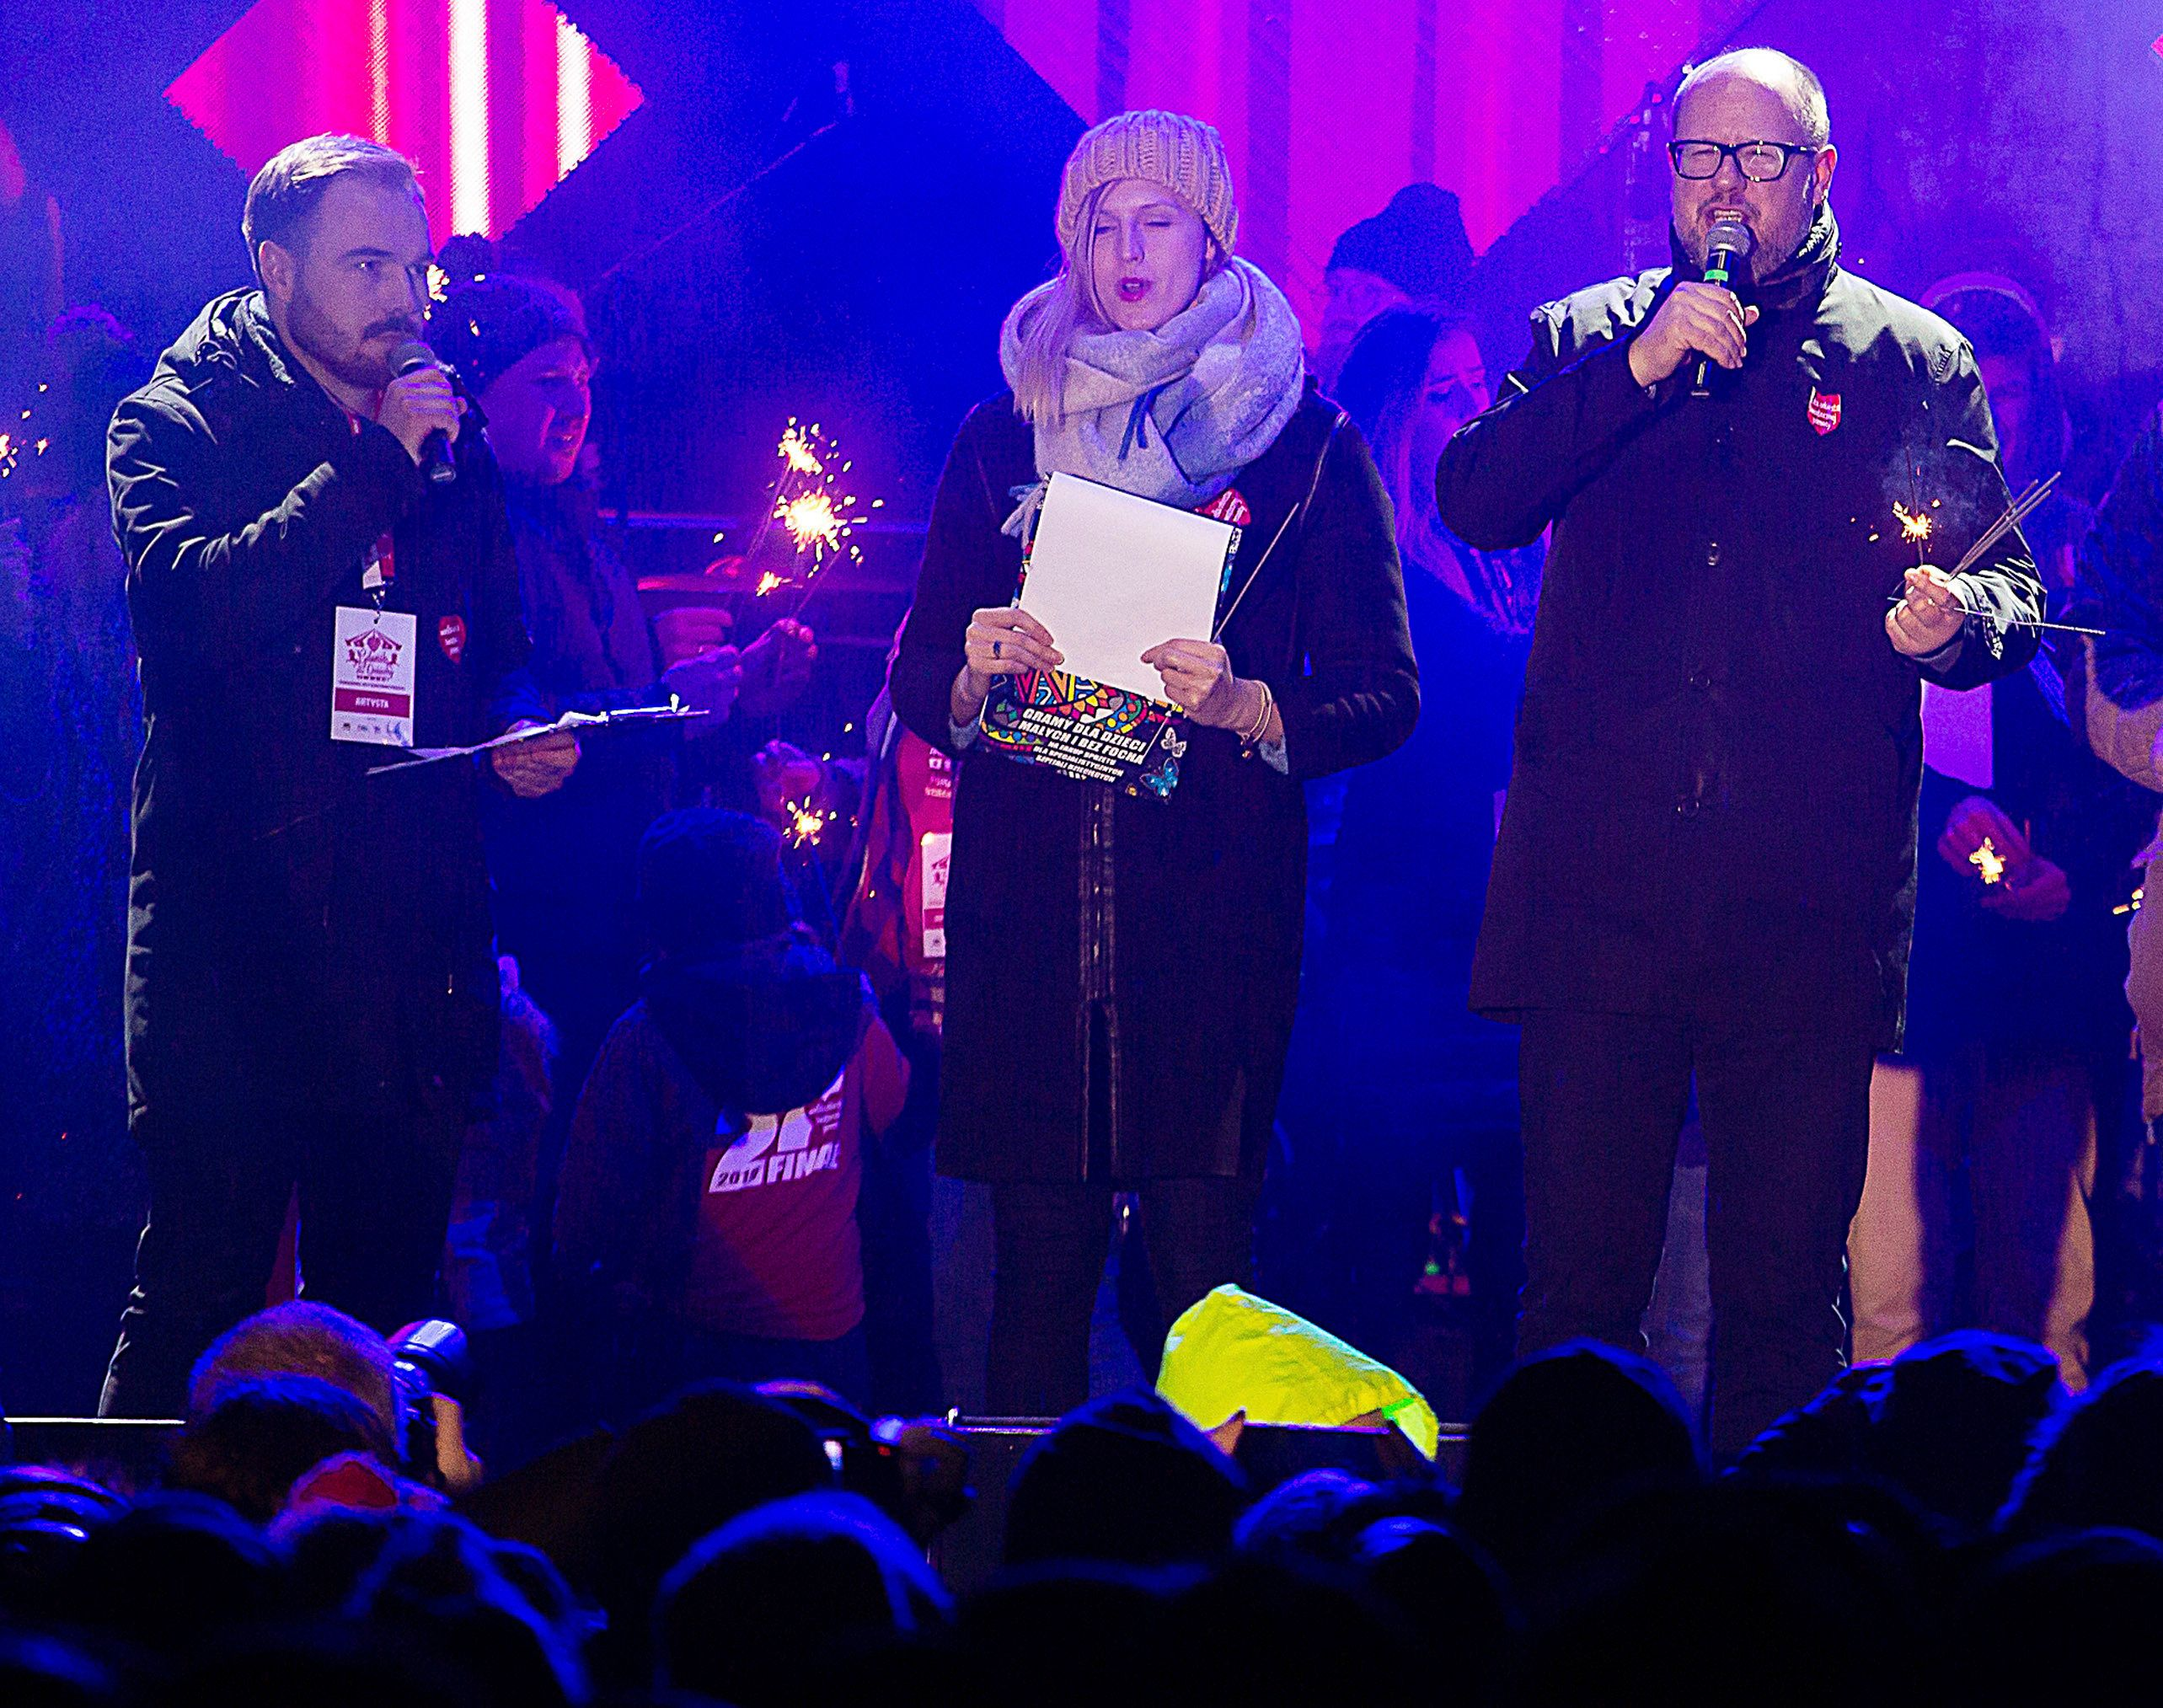 Polish Mayor In 'Very Serious Condition' After Being Stabbed On Stage At Charity